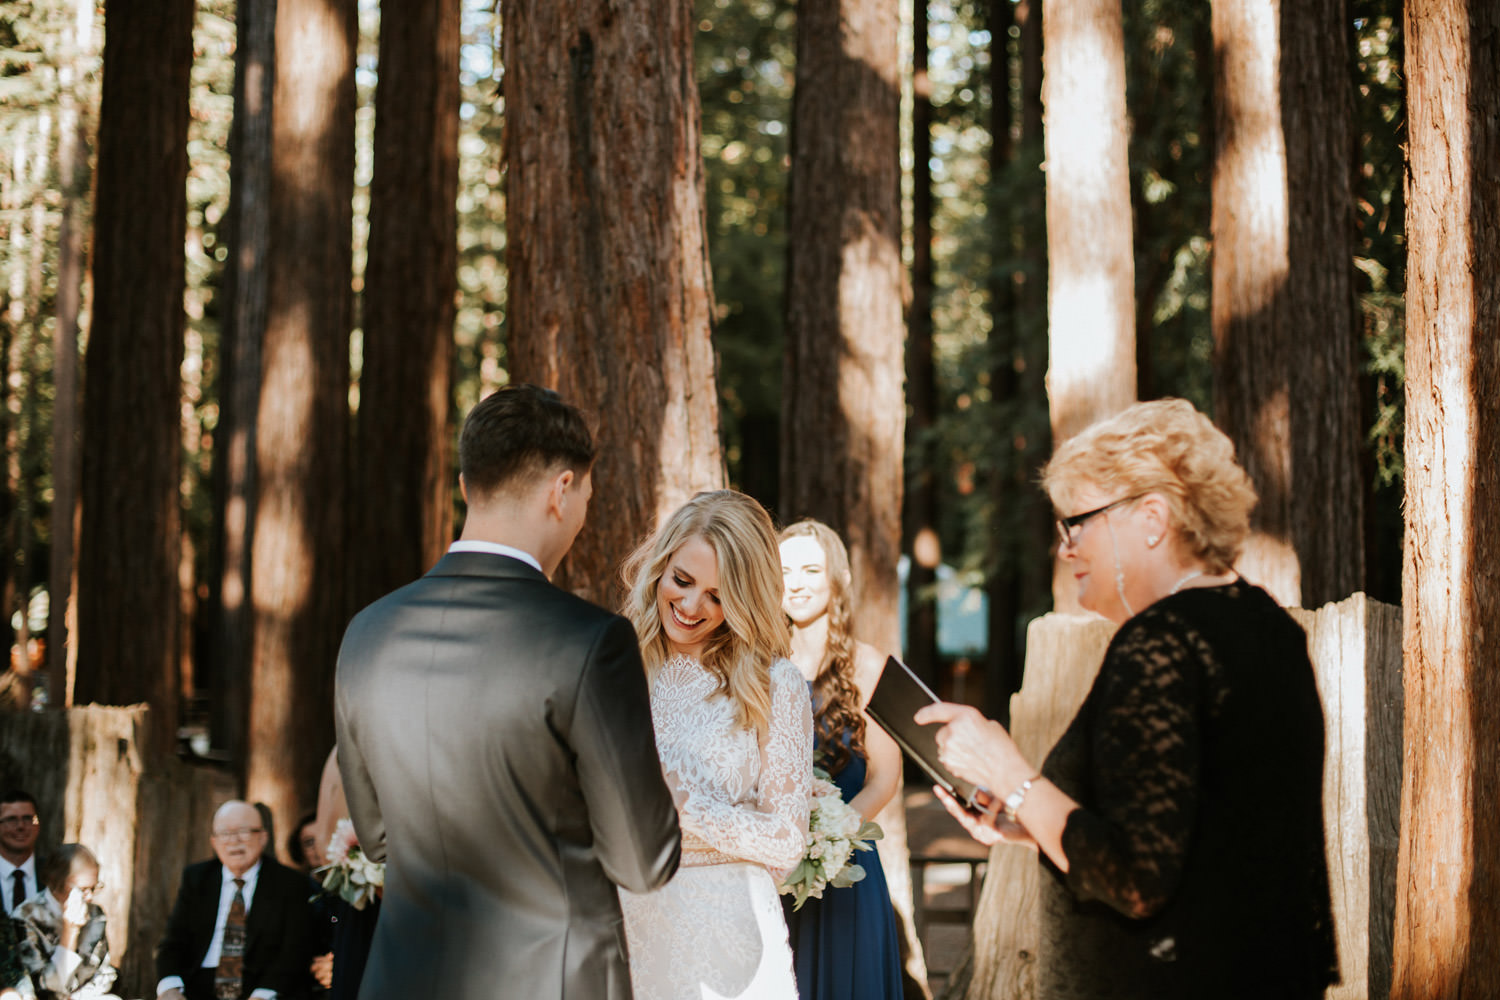 Bride and groom exchange the rings during the ceremony at YMCA Camp Campbell